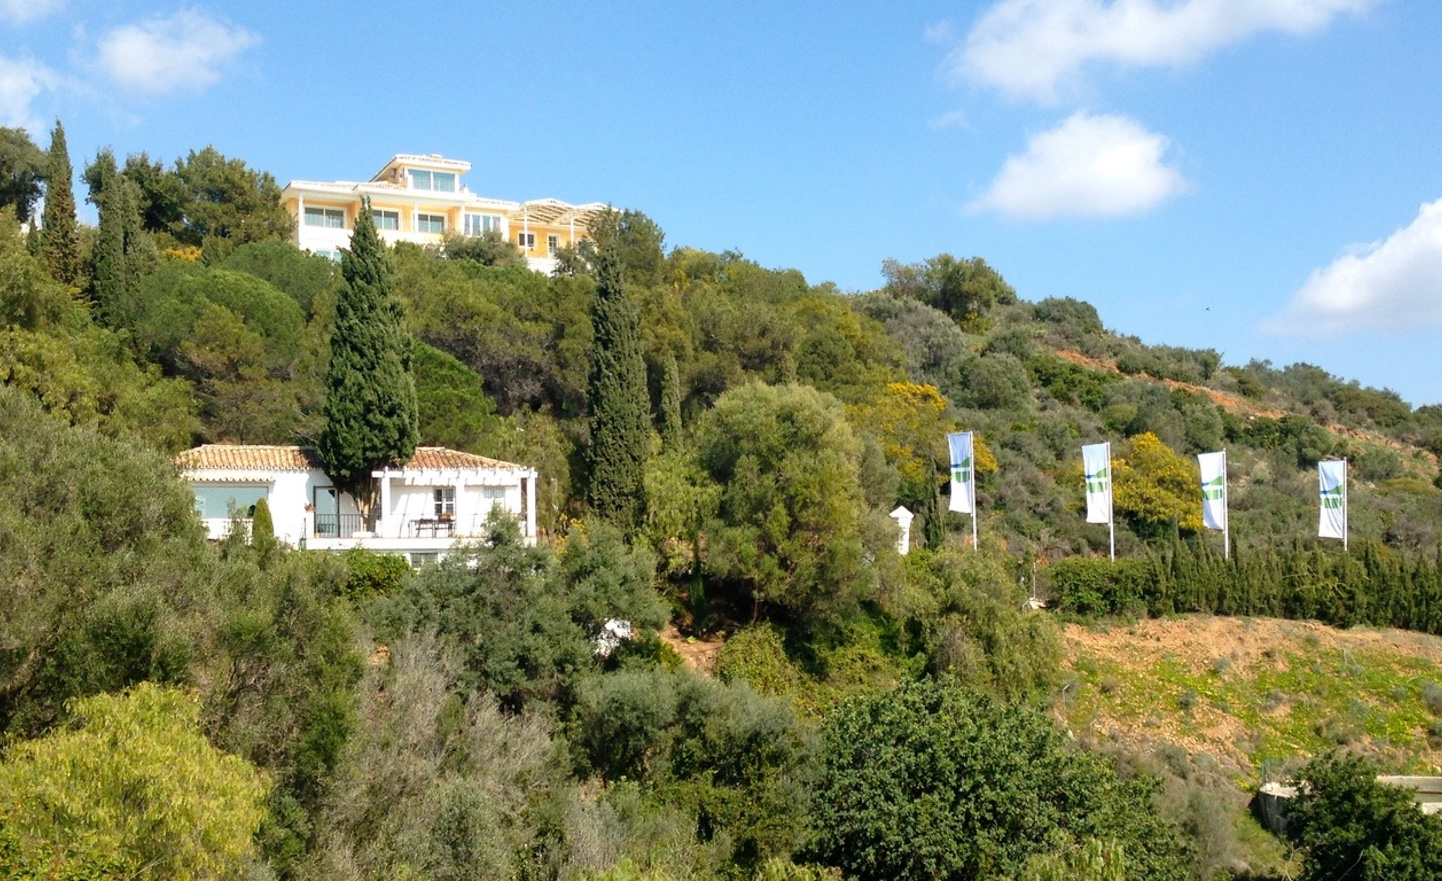 MEDITERRANEAN ARCHITECTURE IN A SUSTAINABLE ENVIRONMENT